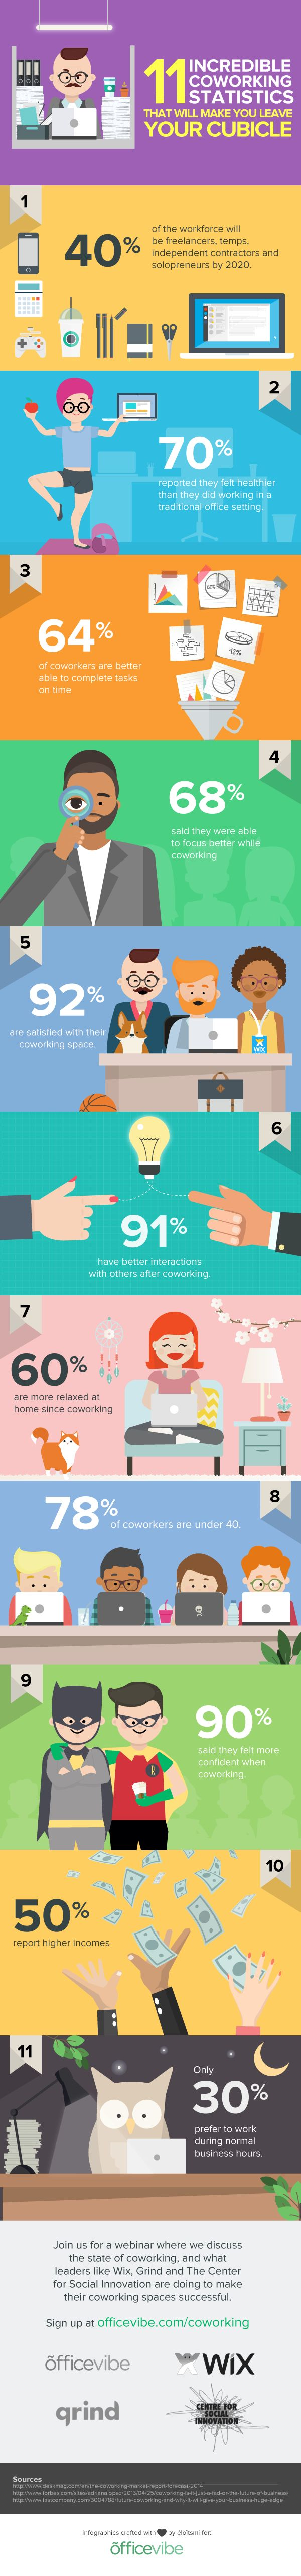 11 Incredible Coworking Statistics That Will Make You Leave Your Cubicle…